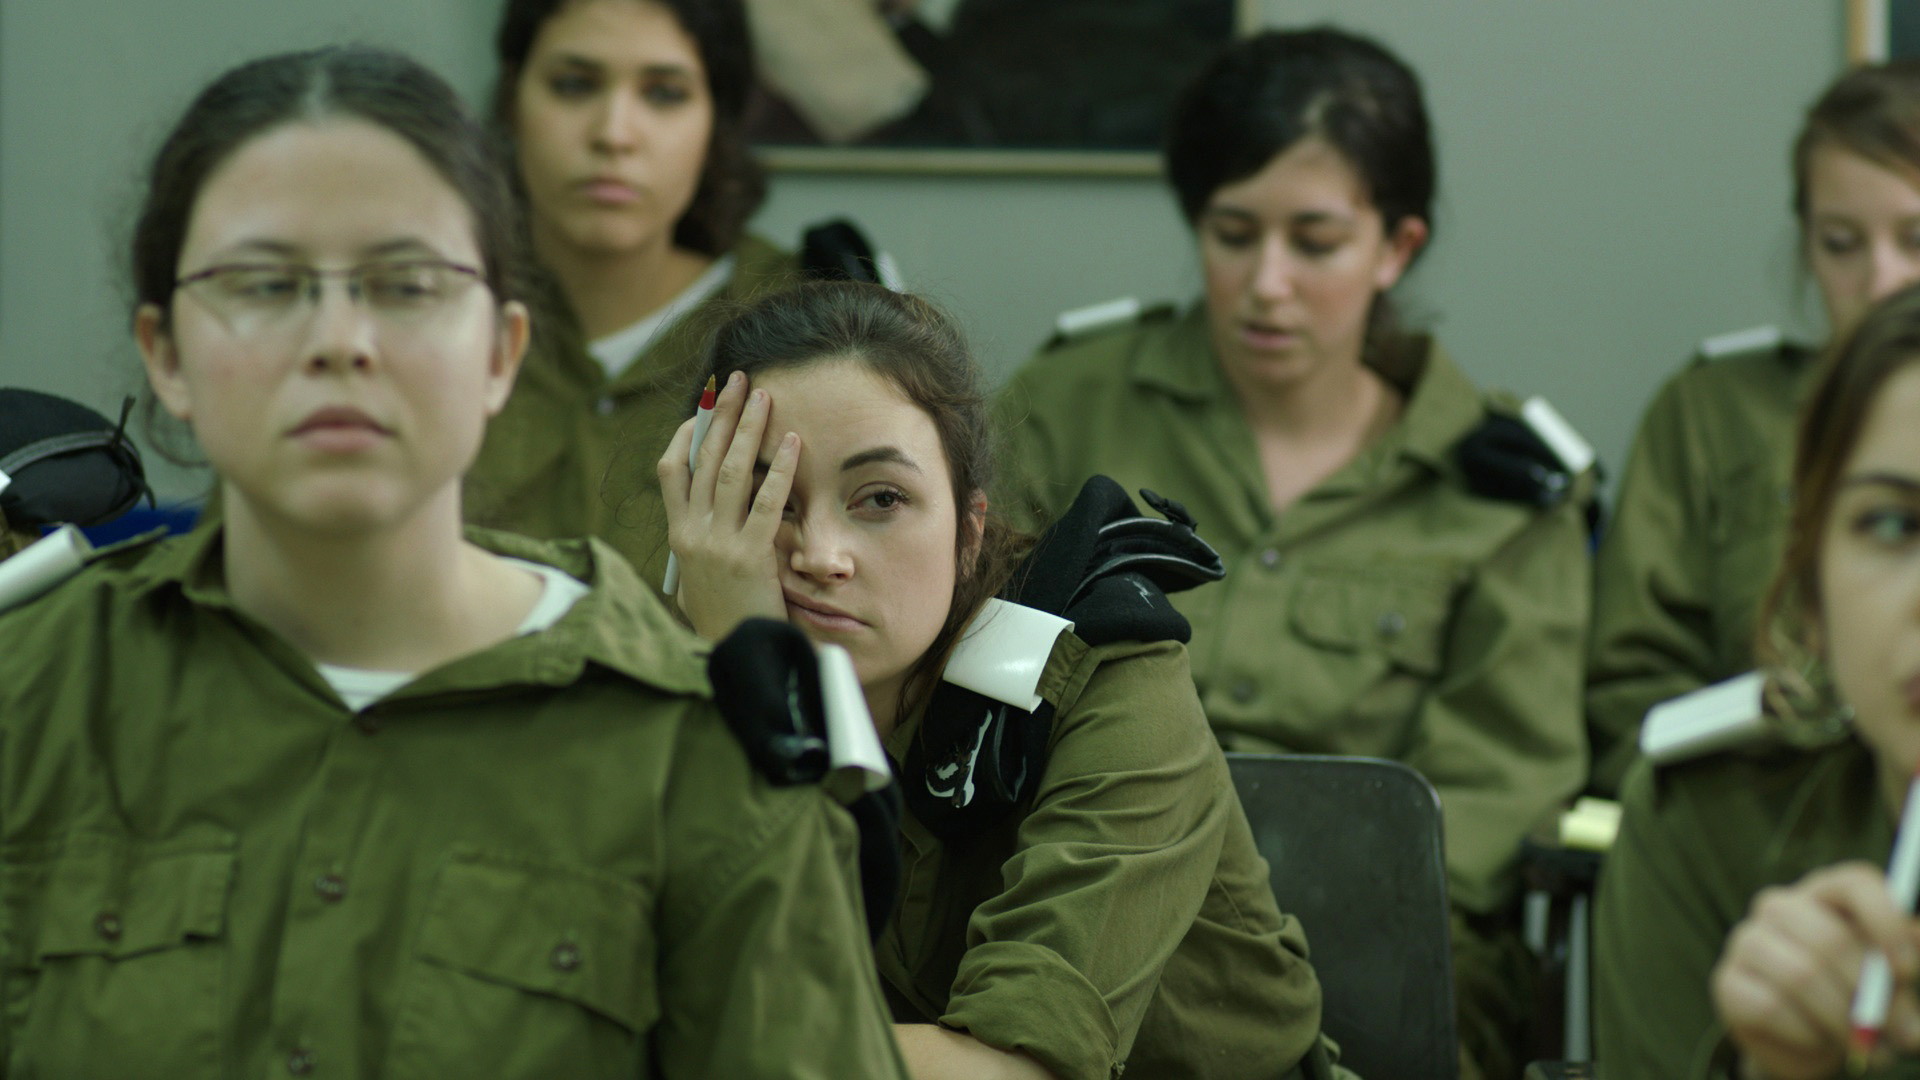 Israel Doesn't Need Conscription